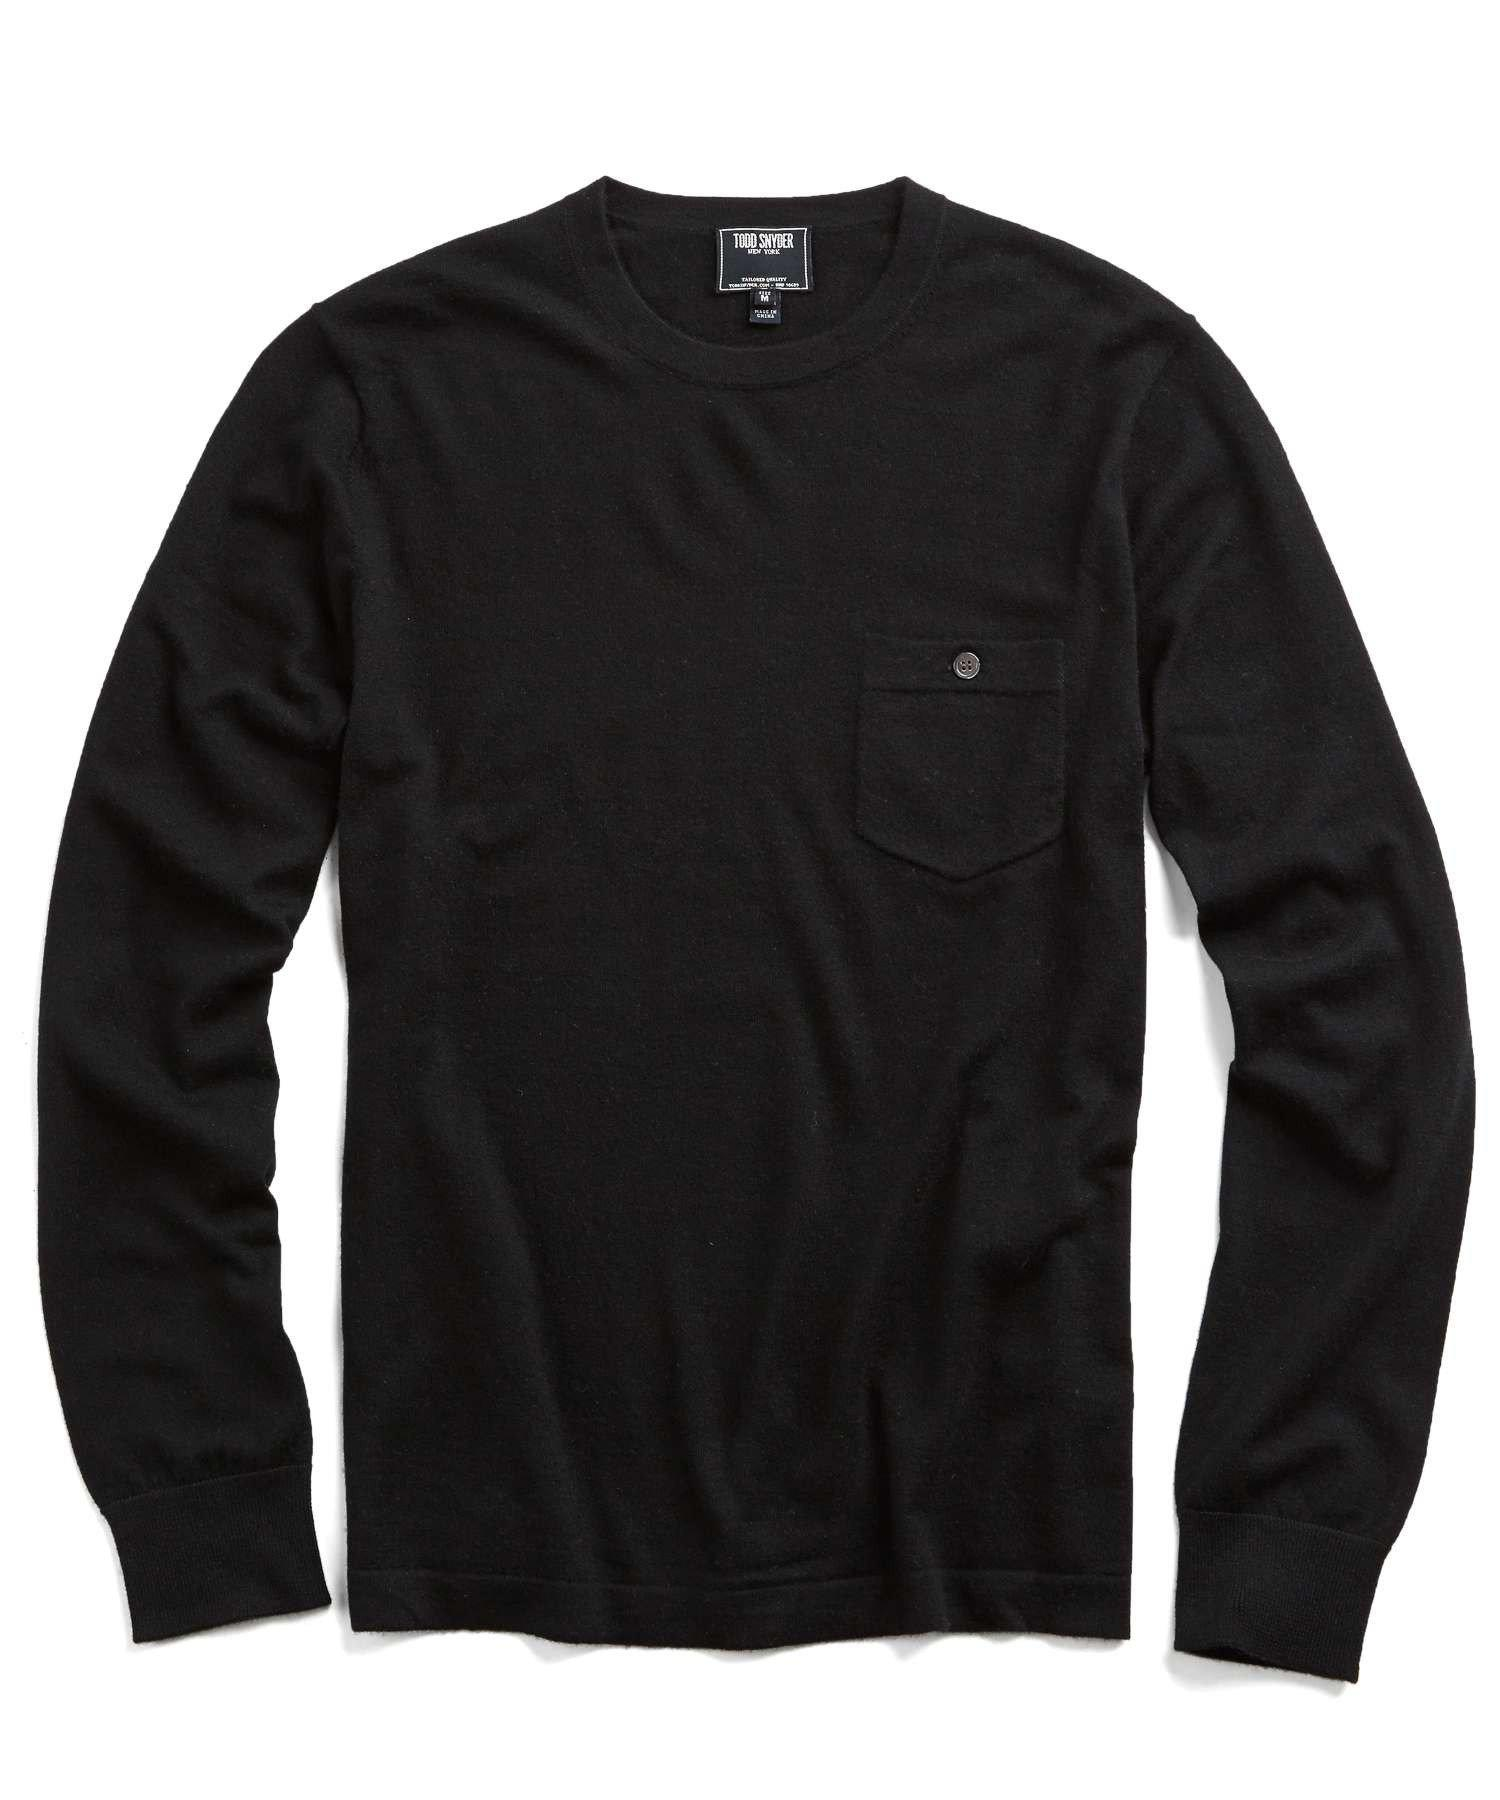 225383e3587bc5 Todd Snyder - Cashmere T-shirt Sweater In Black for Men - Lyst. View  fullscreen